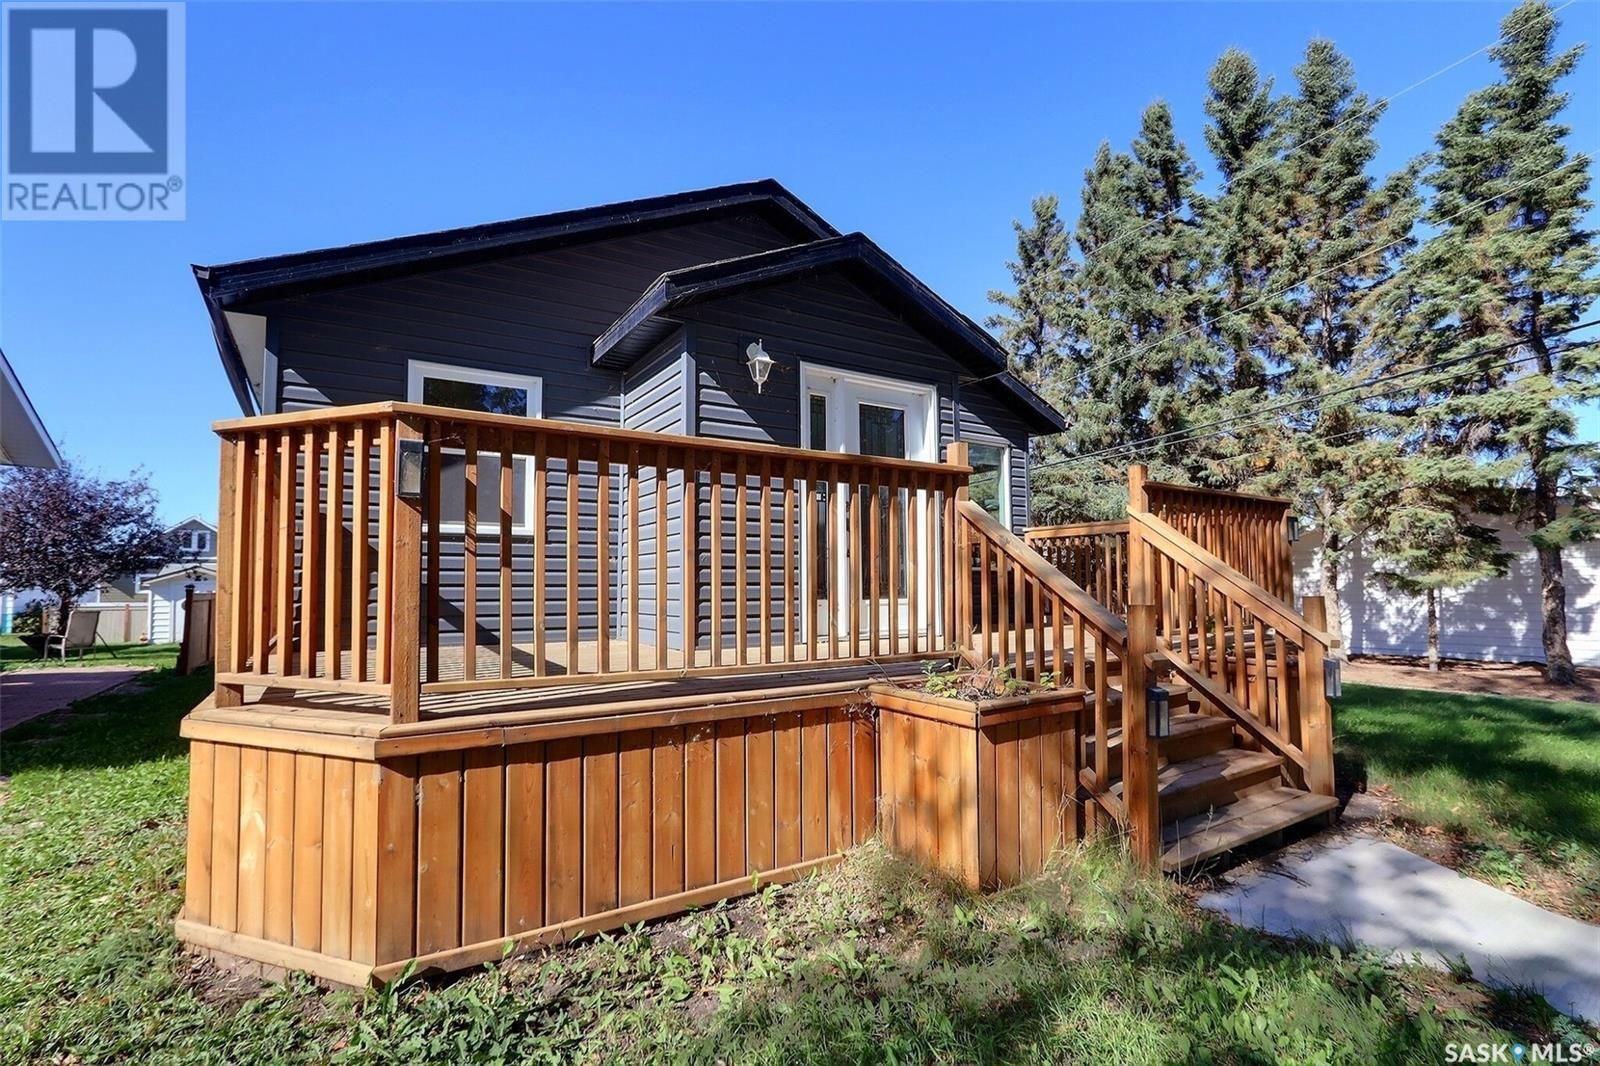 Main Photo: 805 West ST in Melfort: House for sale : MLS®# SK871134